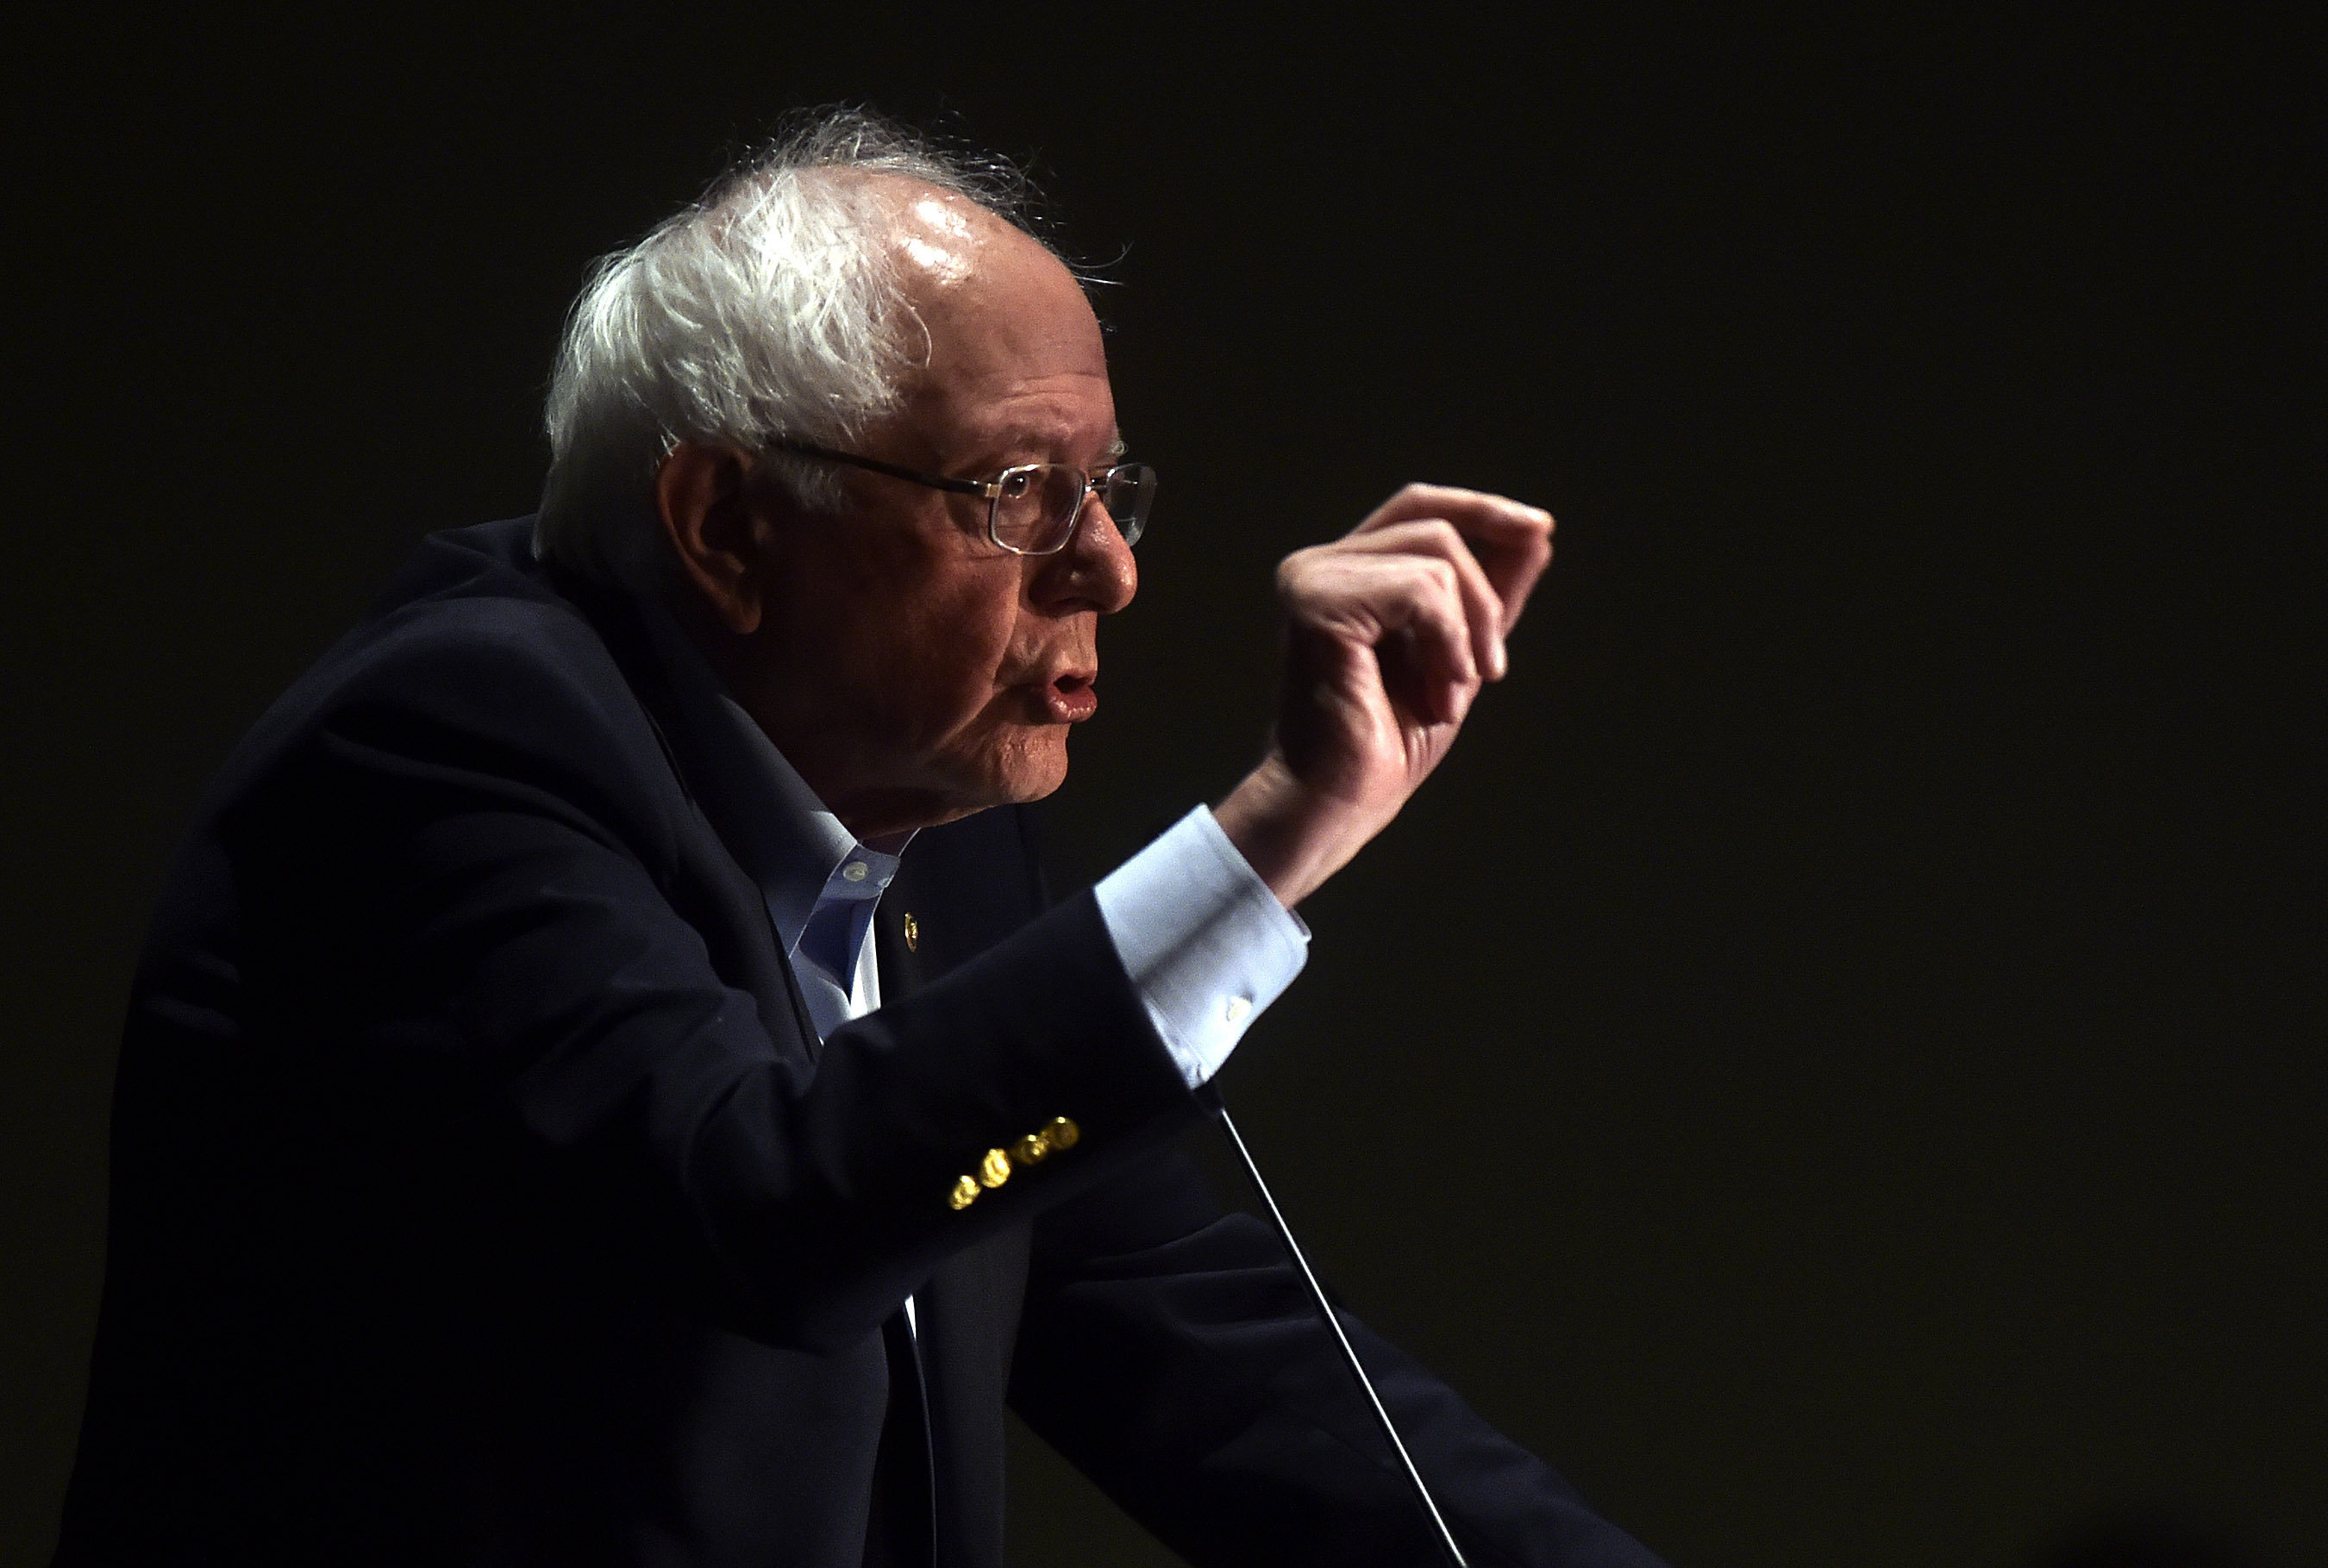 Presidential hopeful Bernie Sanders speaks at a Pennsylvania Association of Staff Nurses and Allied Professionals conference where he spoke about the nursing industry and medical insurance at the Mohegan Sun Pocono, Pa., on Monday, April 15, 2019. (Aimee Dilger/The Times Leader via AP)